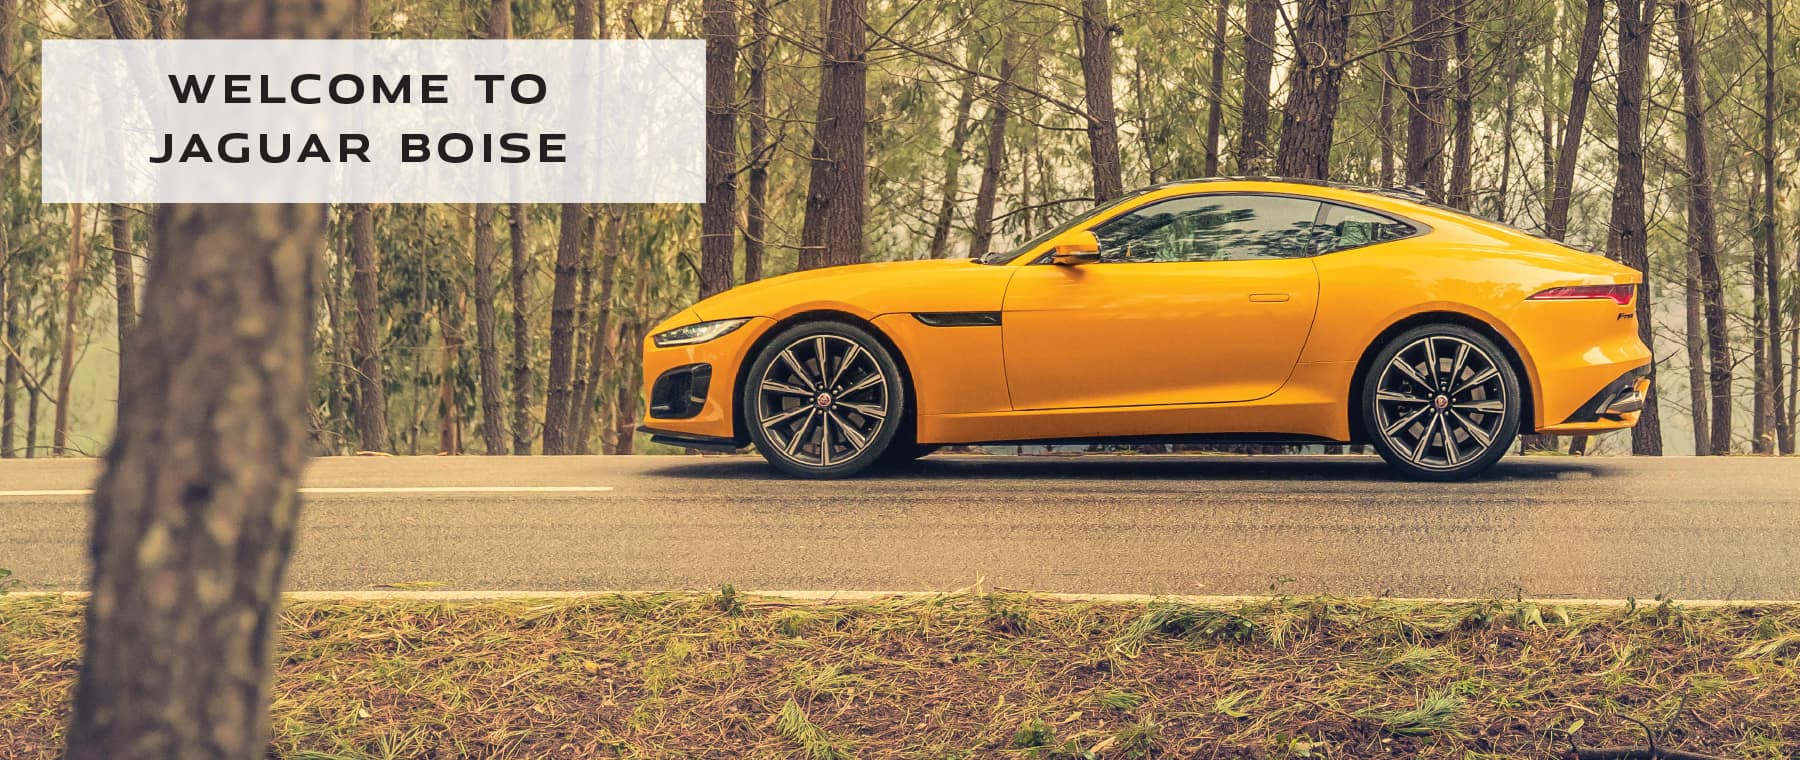 WELCOME TO JAGUAR BOISE. YELLOW JAGUAR F-TYPE DRIVING DOWN ROAD IN WOODS.